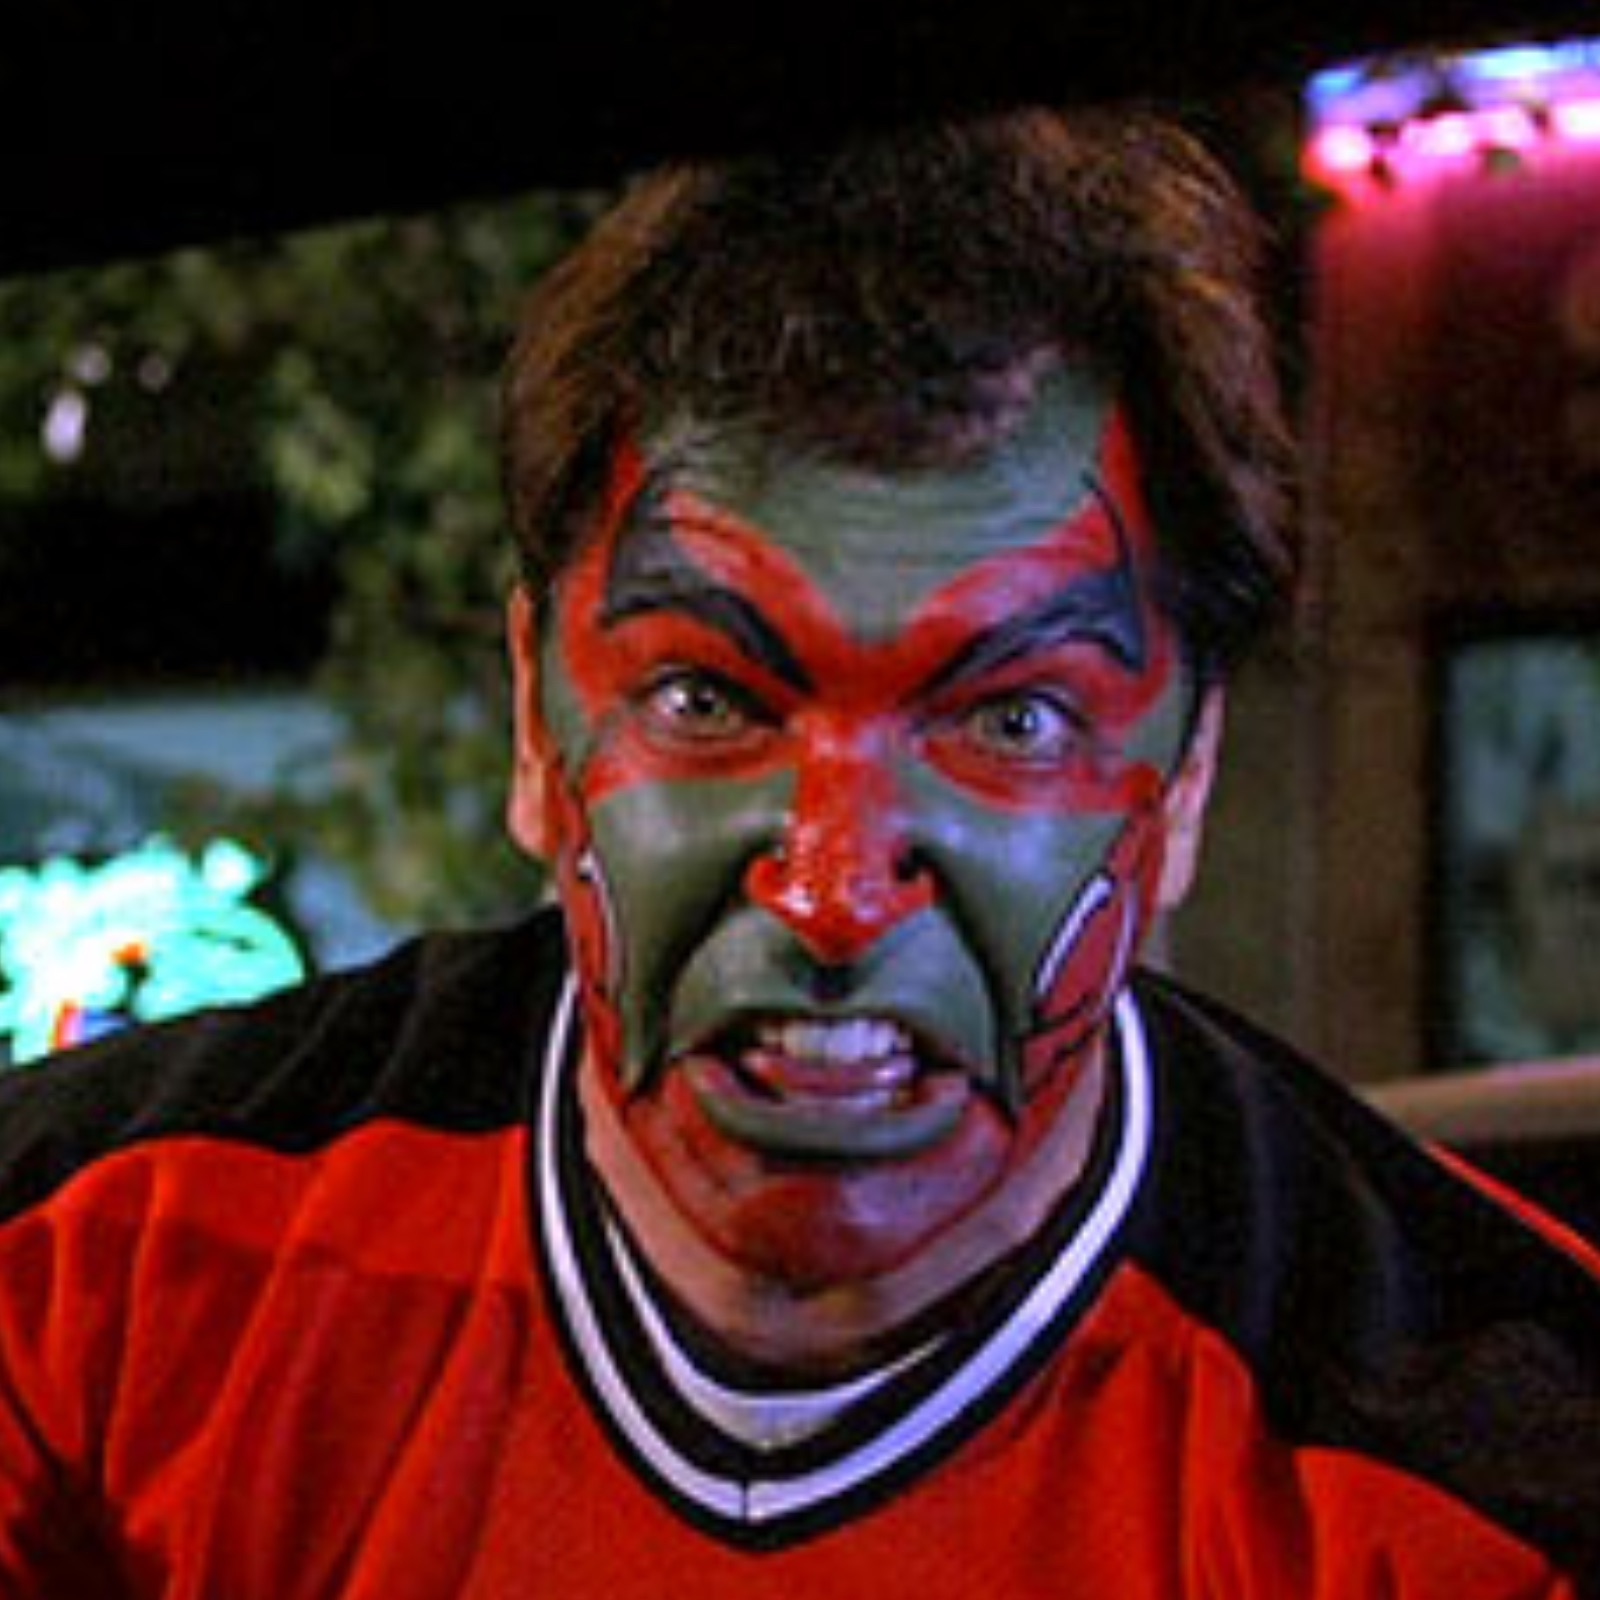 Airing of Grievances - Ep102 - The Face Painter